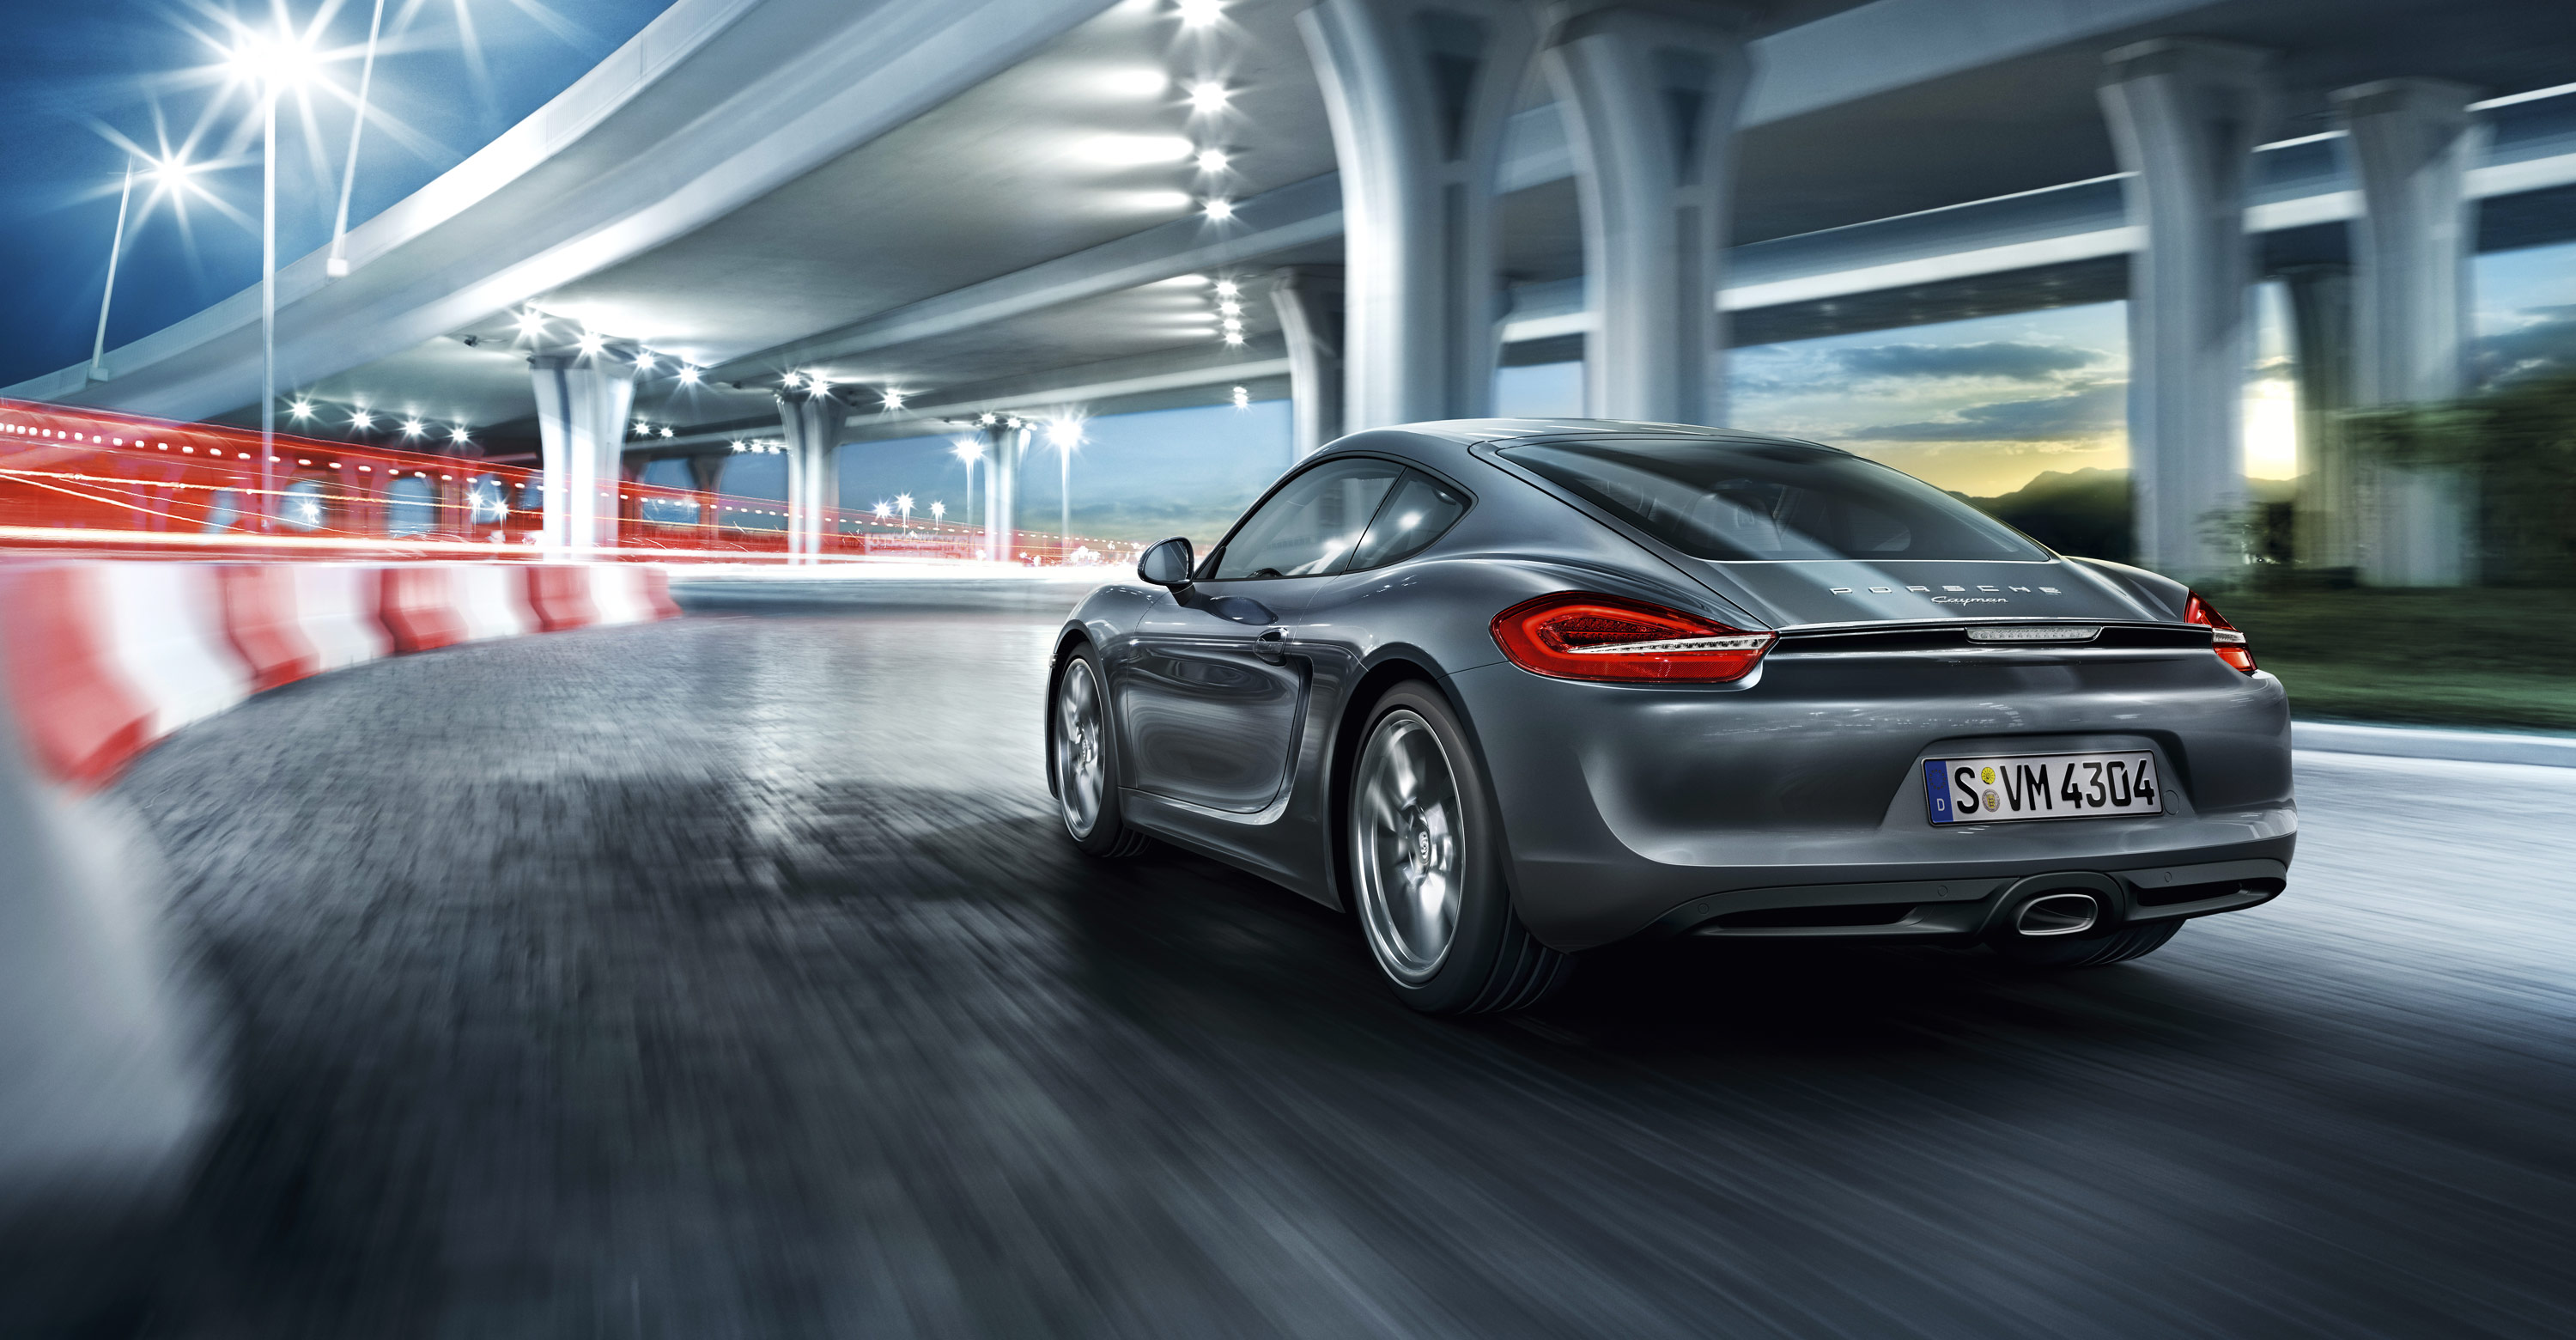 2013-porsche-cayman-wallpaper_04